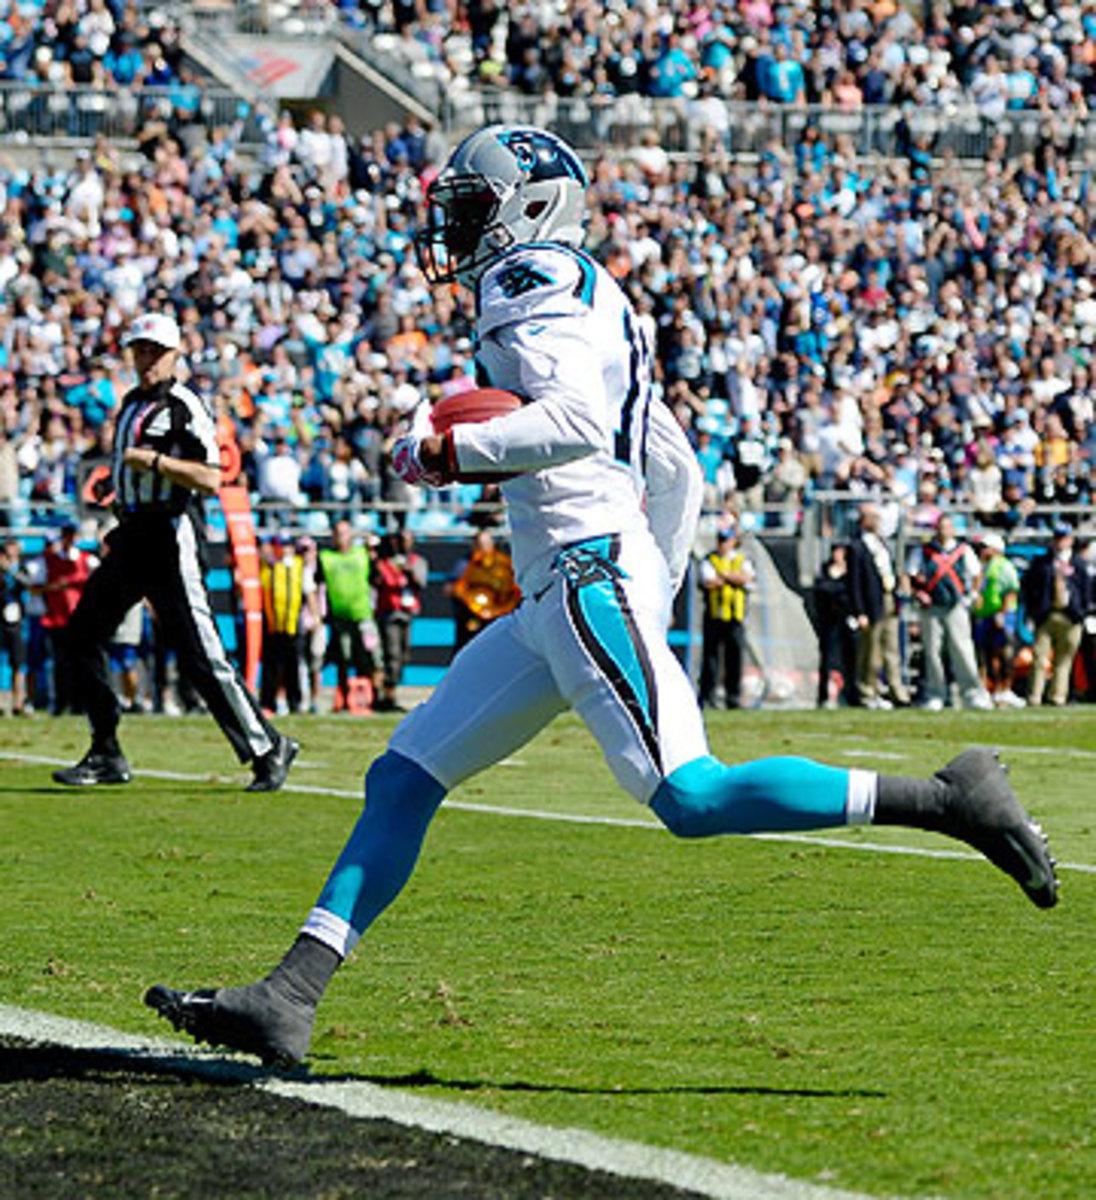 Philly Brown scored the first punt return touchdown for the Panthers since 2003. (Grant Halverson/Getty Images)